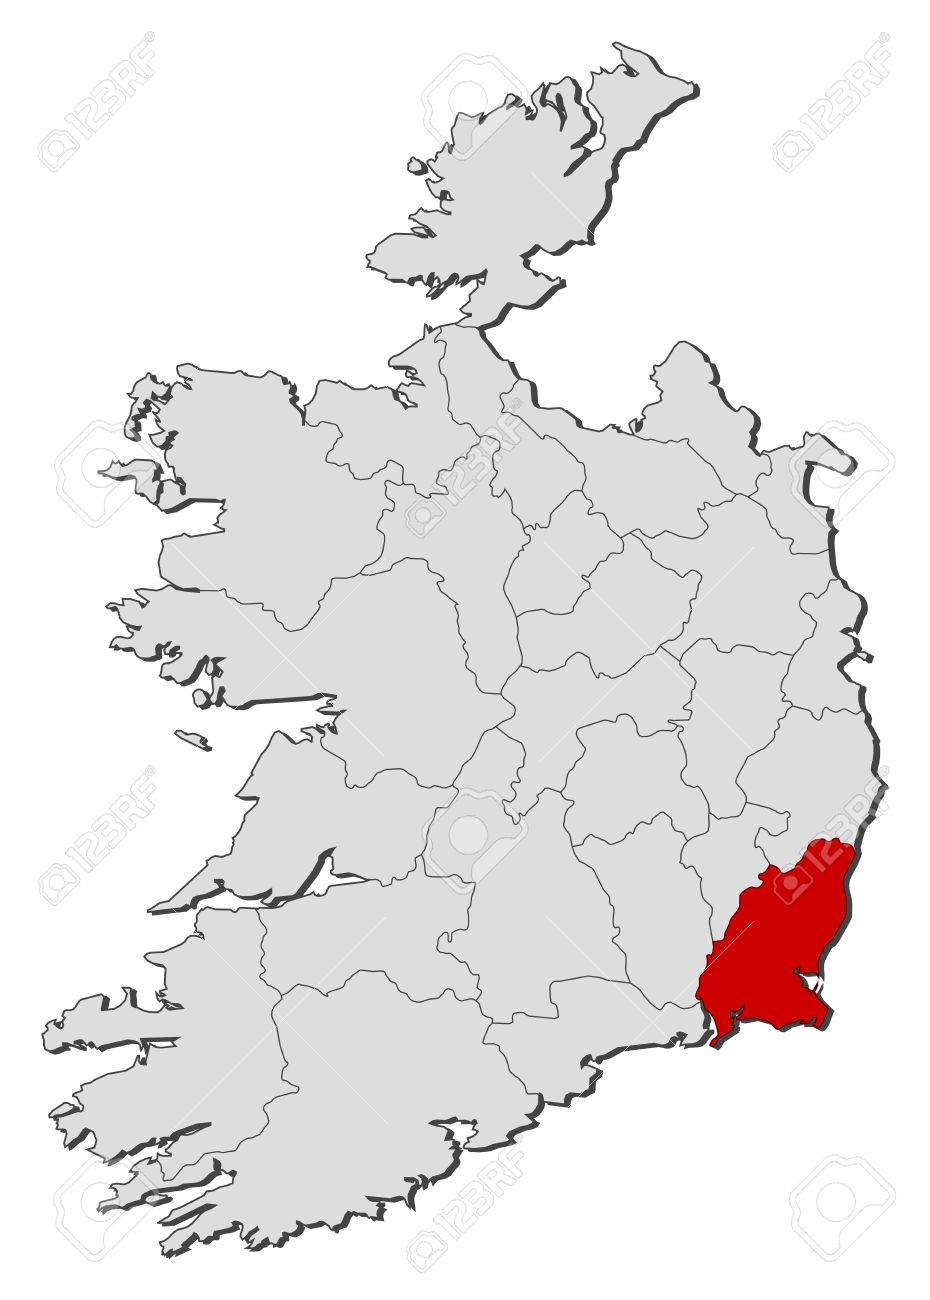 Wexford Map Of Ireland.Map Of Ireland With The Provinces Wexford Is Highlighted